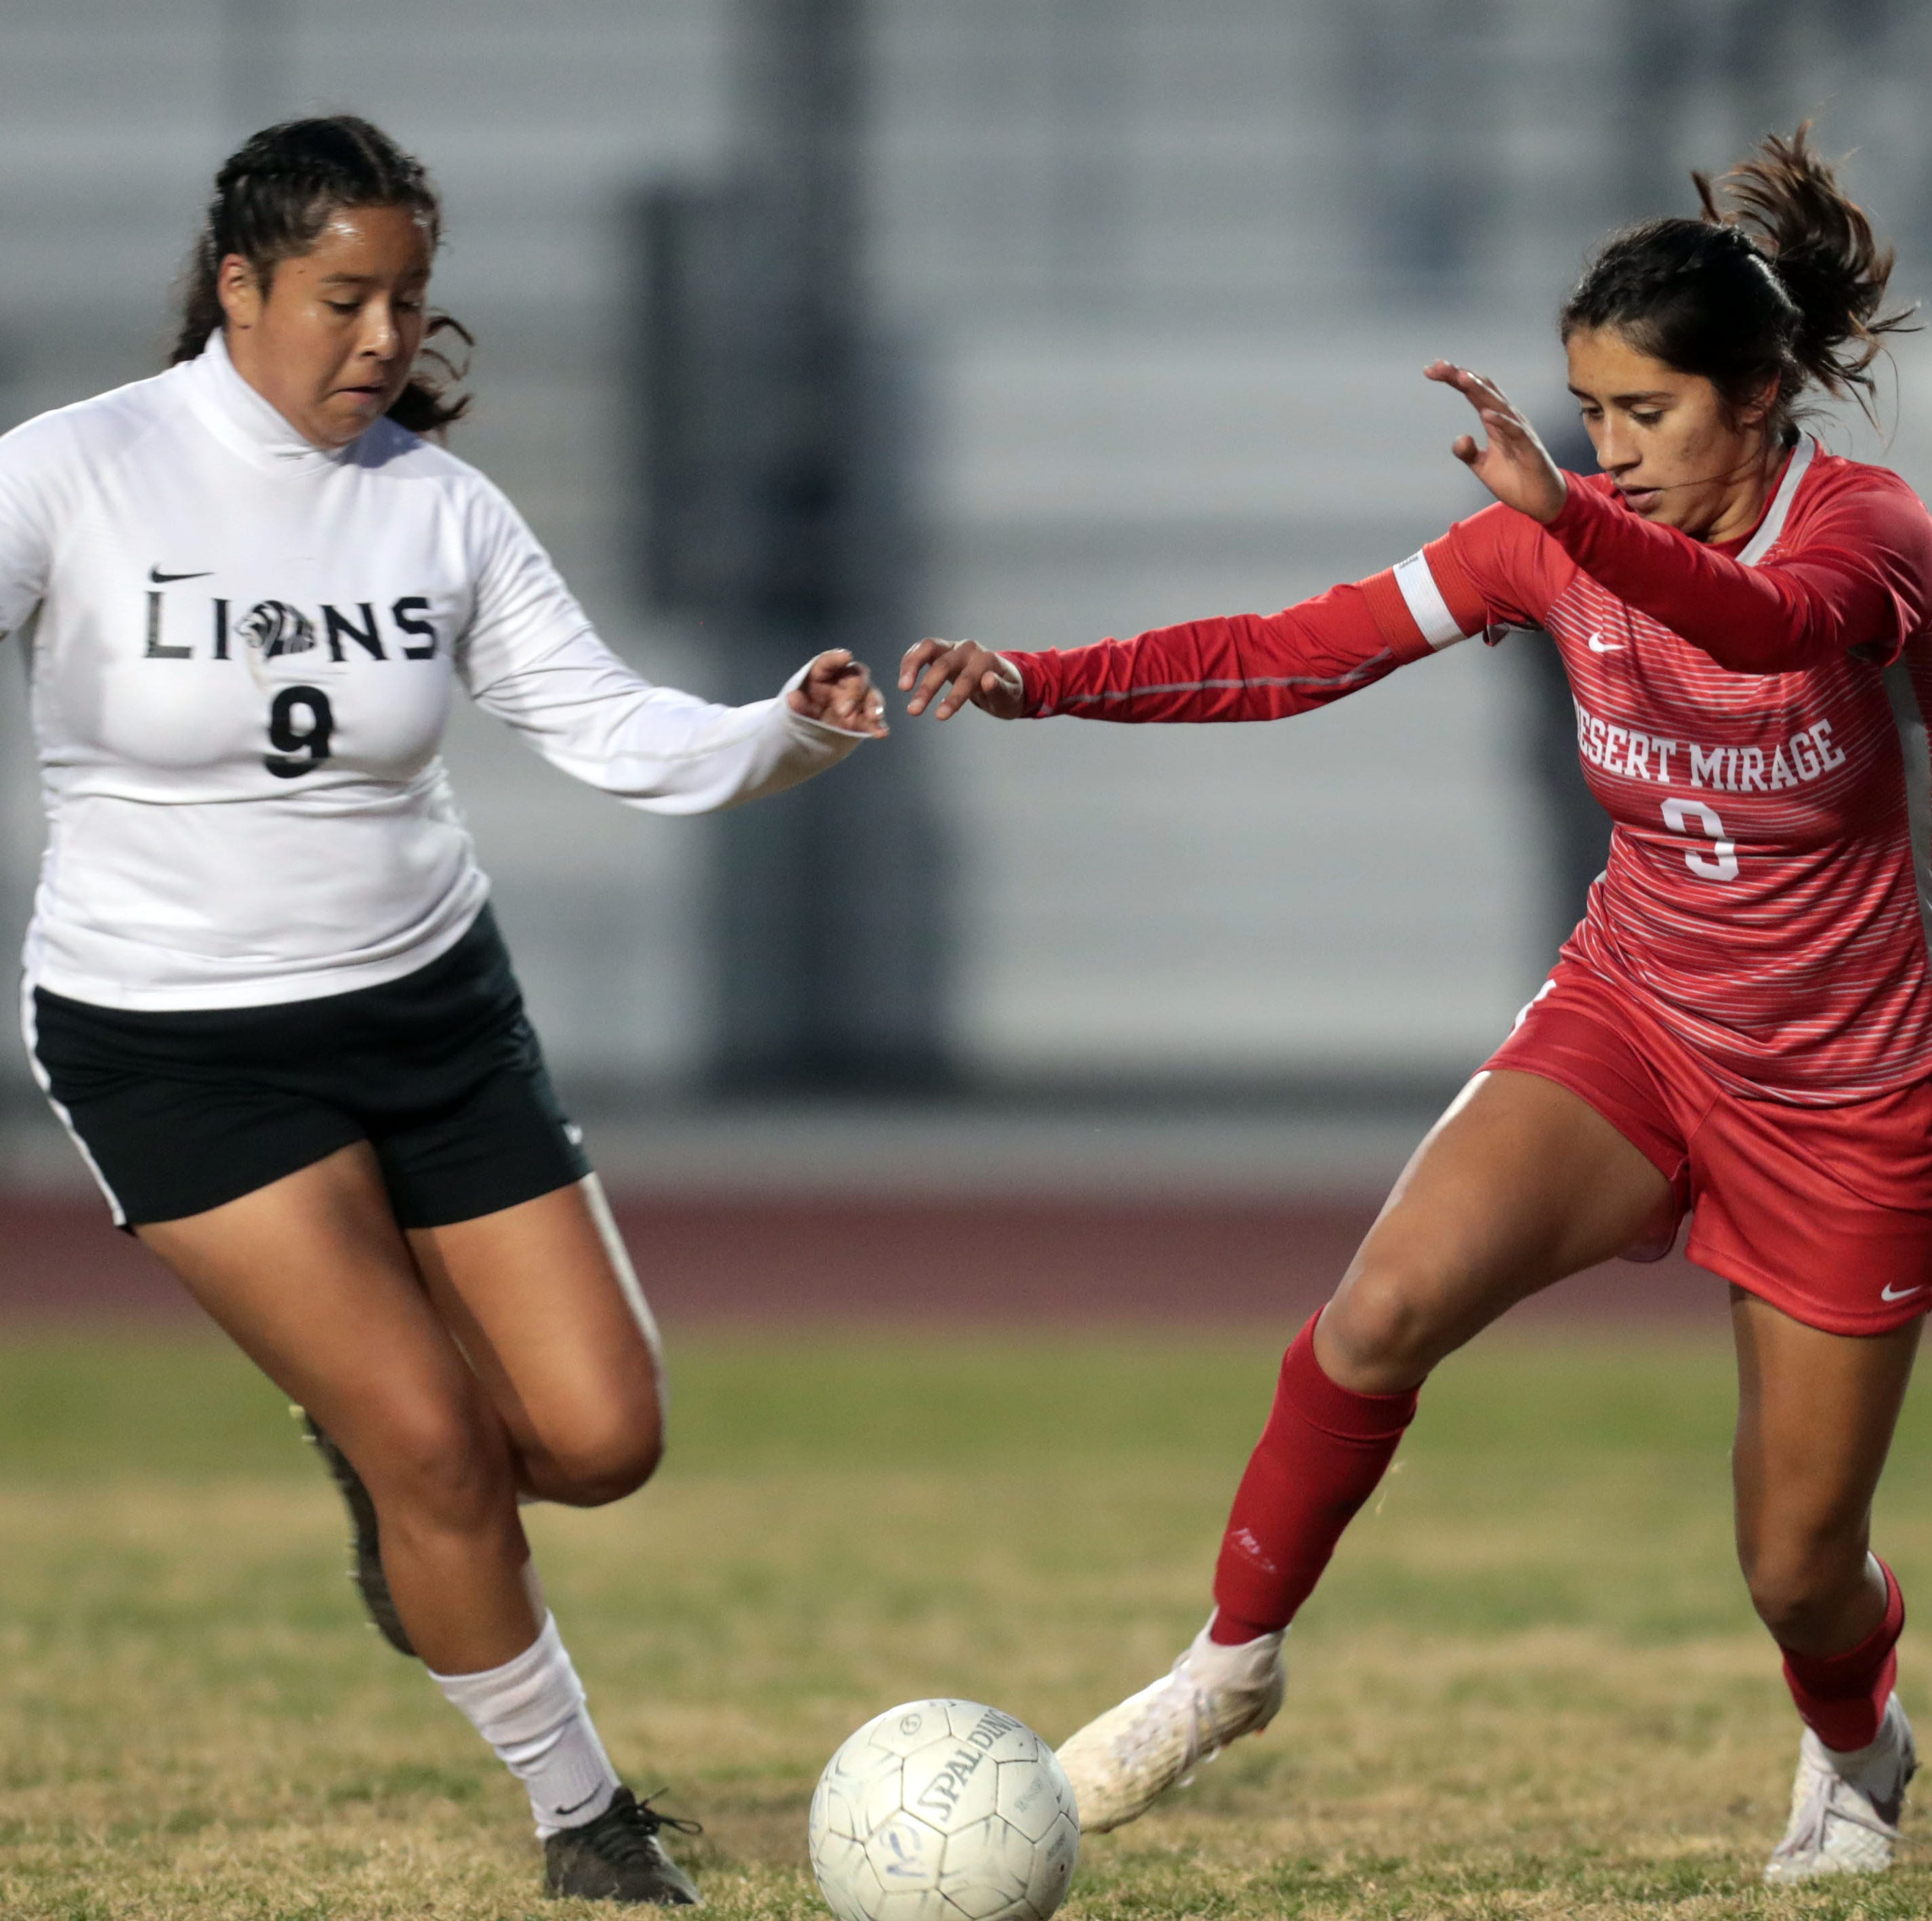 Desert Mirage is lone soccer team from Coachella Valley to advance to CIF title game